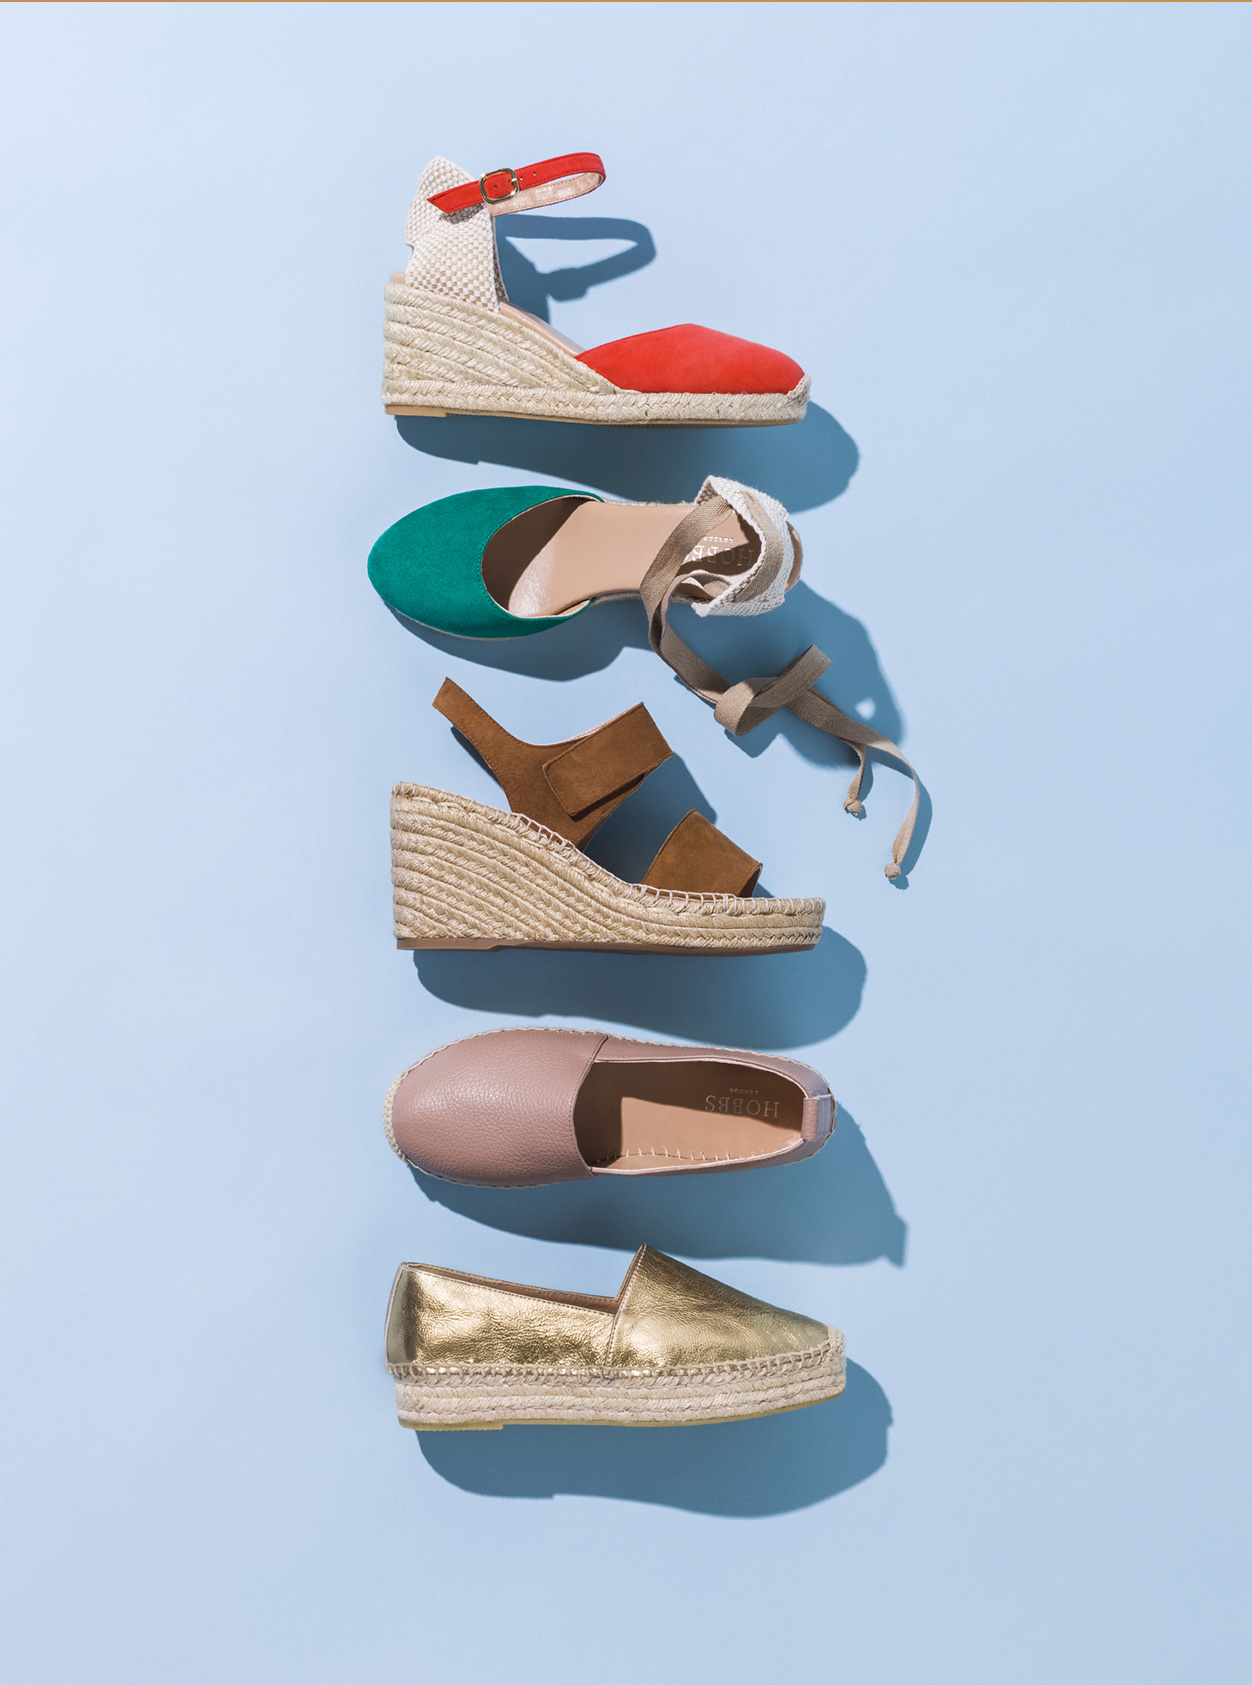 Hobbs espadrille wedges set against a blue background. From top to bottom: Red, green, brown, nude and gold.